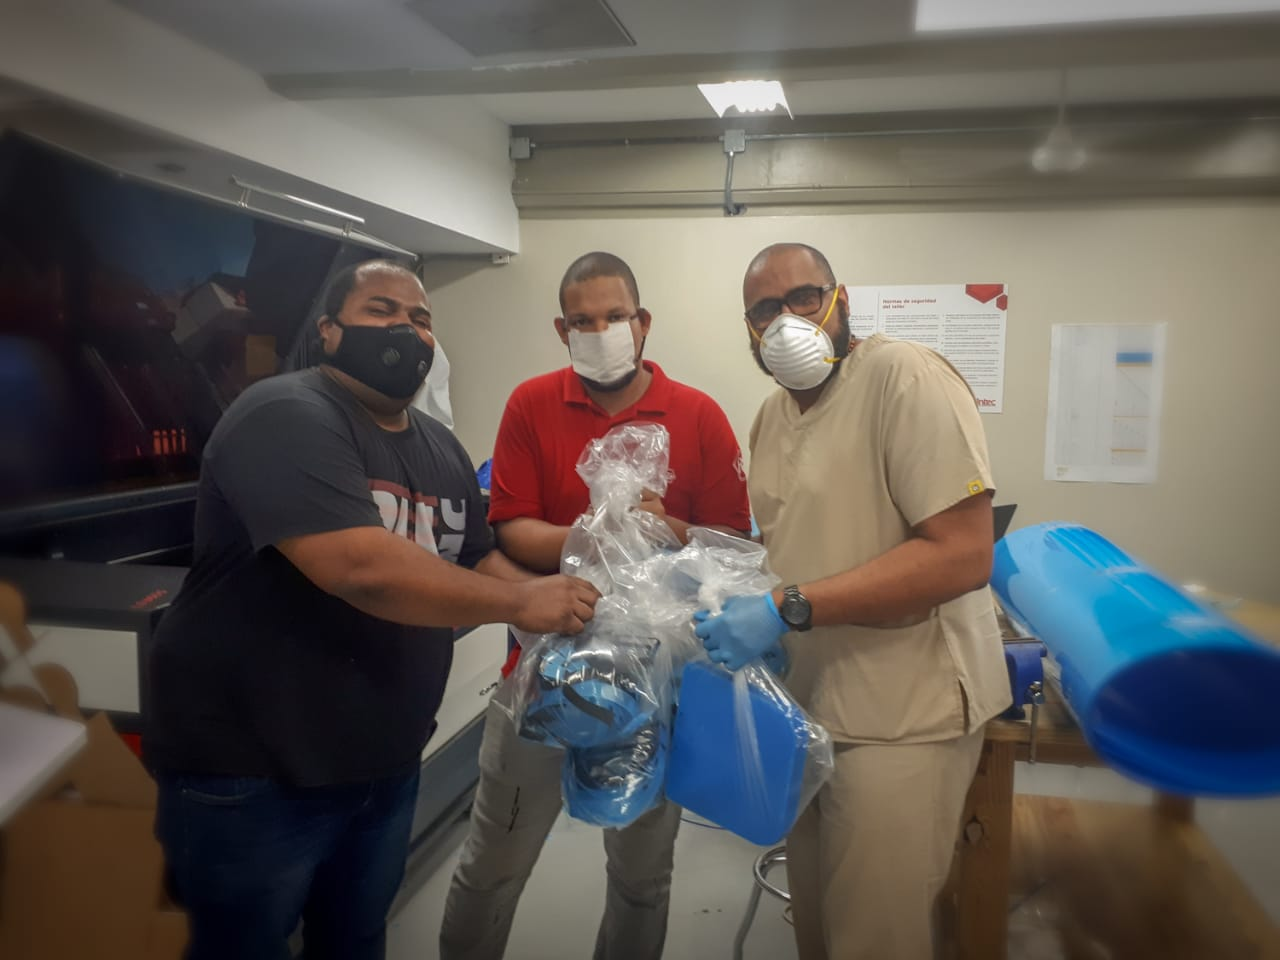 Delivery of 50 masks to the Darío Contreras Hospital min